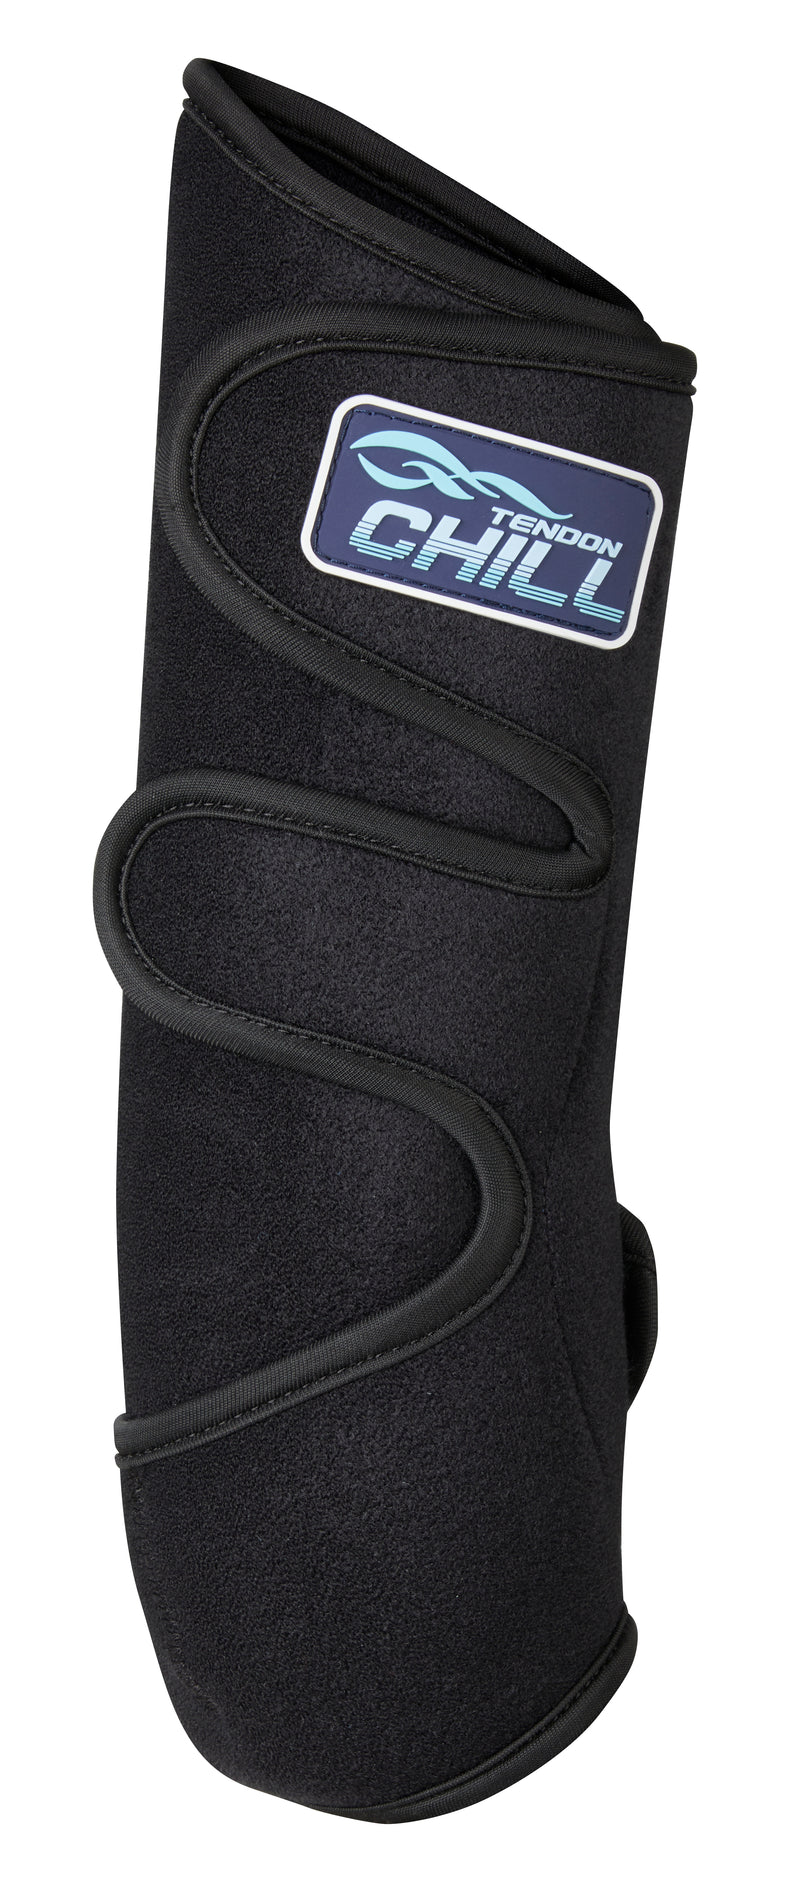 LeMieux Tendon Chill Boots